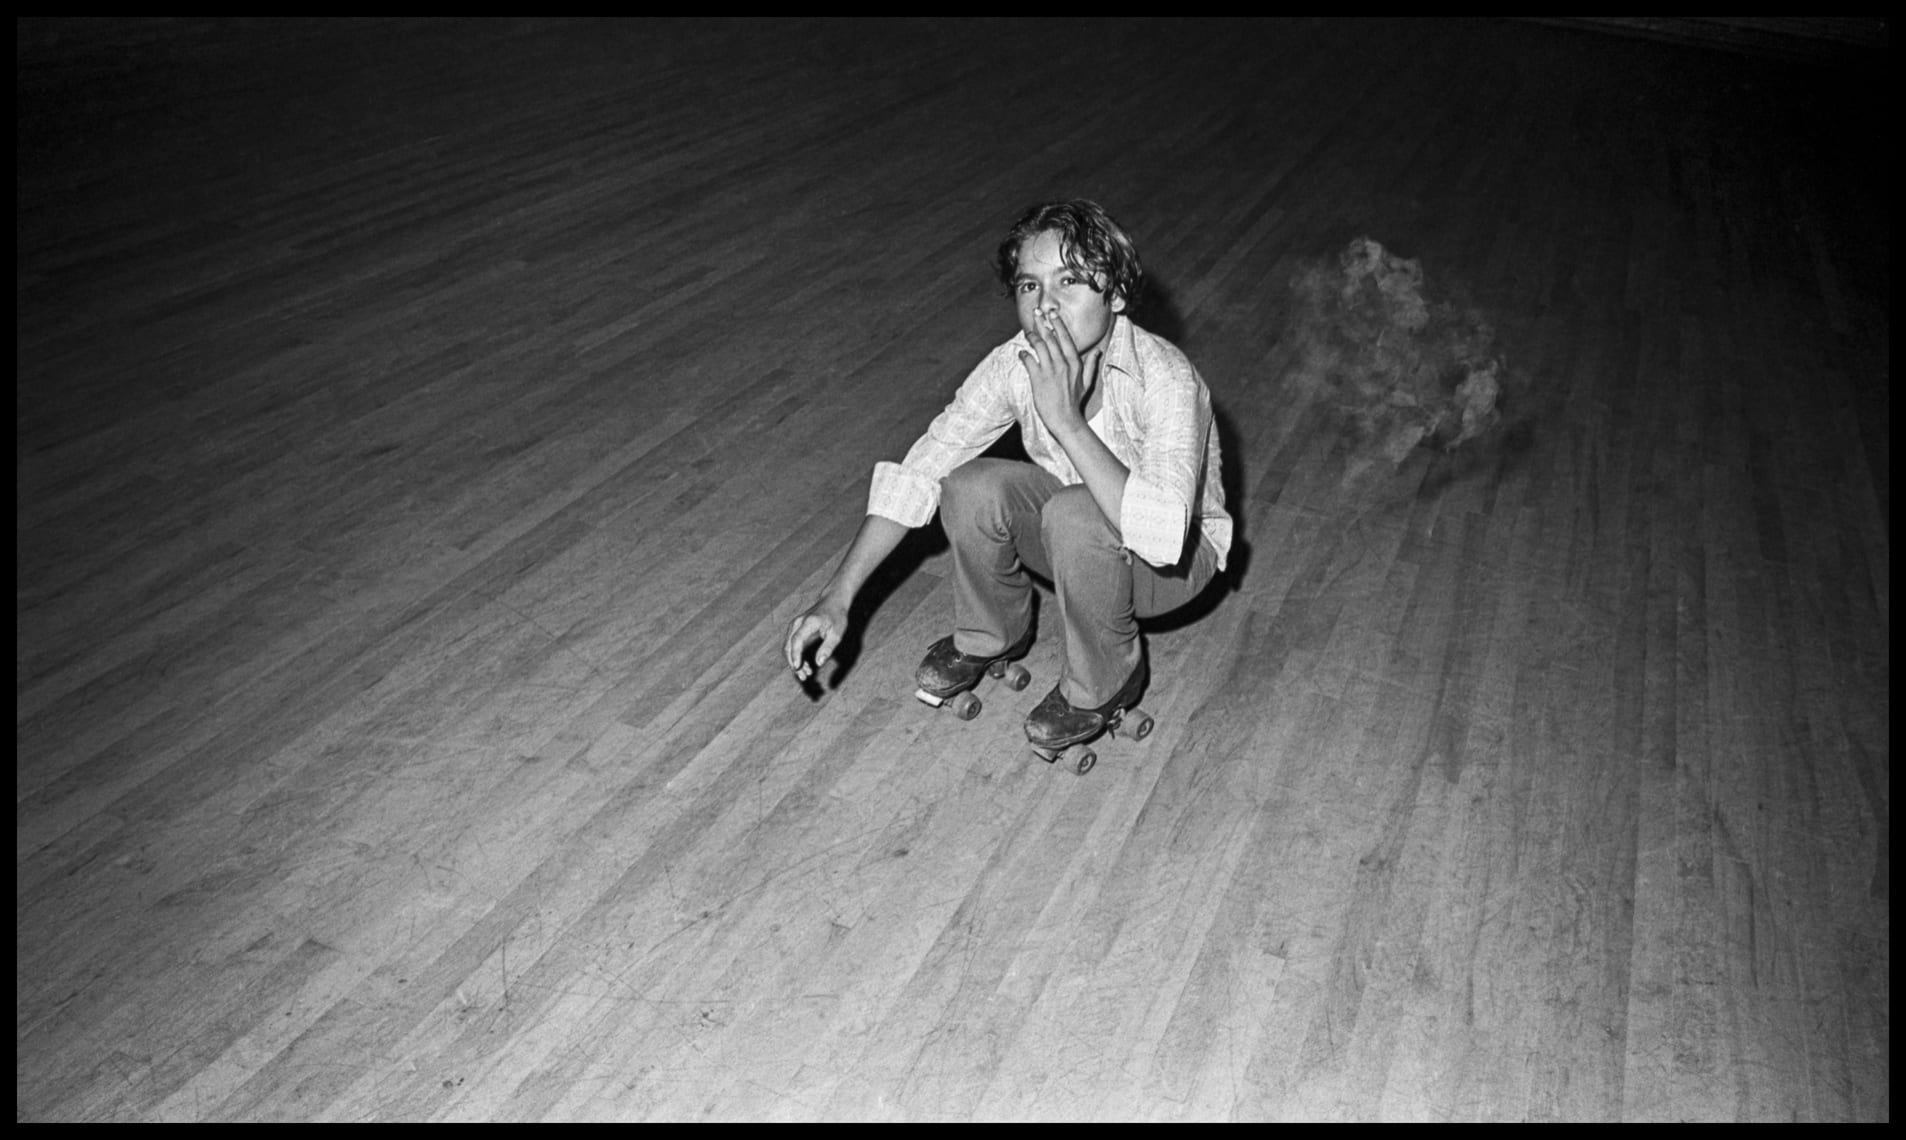 Sweetheart Roller Skating Rink - 1972-1973 - Six Mile Creek, Hillsborough County (Tampa) FL ©Bill Yates